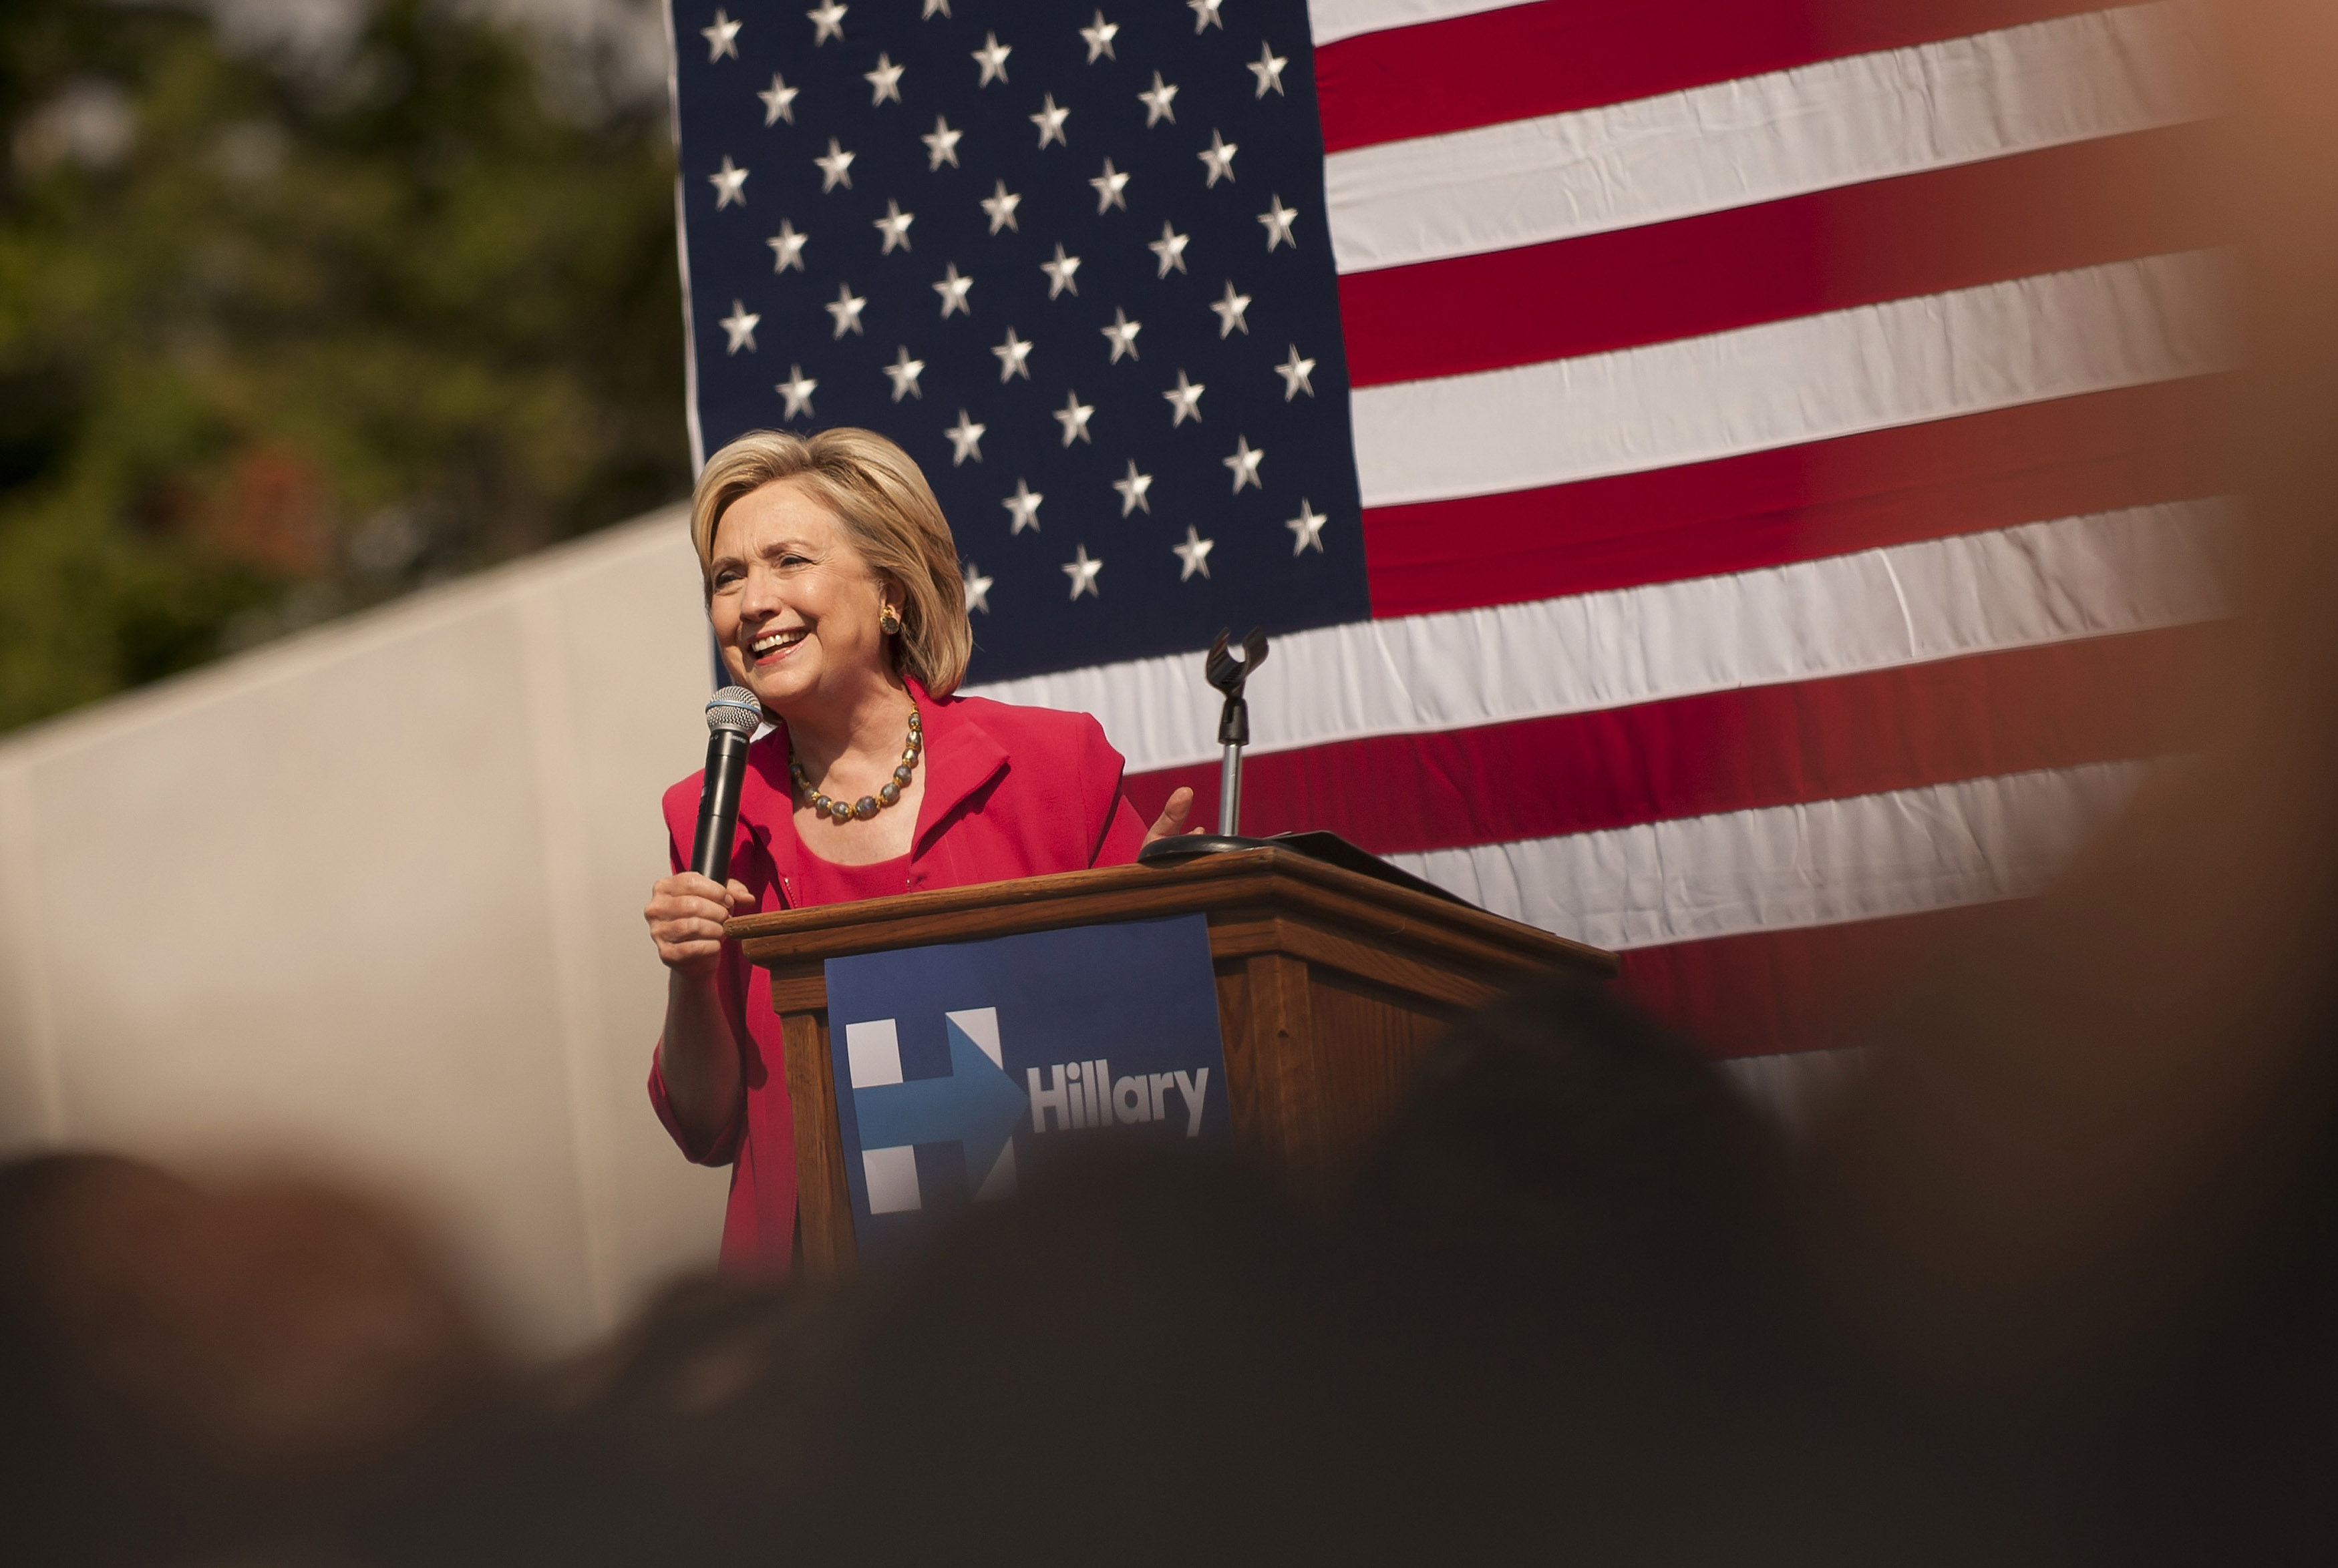 Democratic presidential candidate Hillary Clinton speaks to guests gathered for a campaign meeting on the campus of Case Western Reserve University on August 27, 2015 in Cleveland, Ohio.